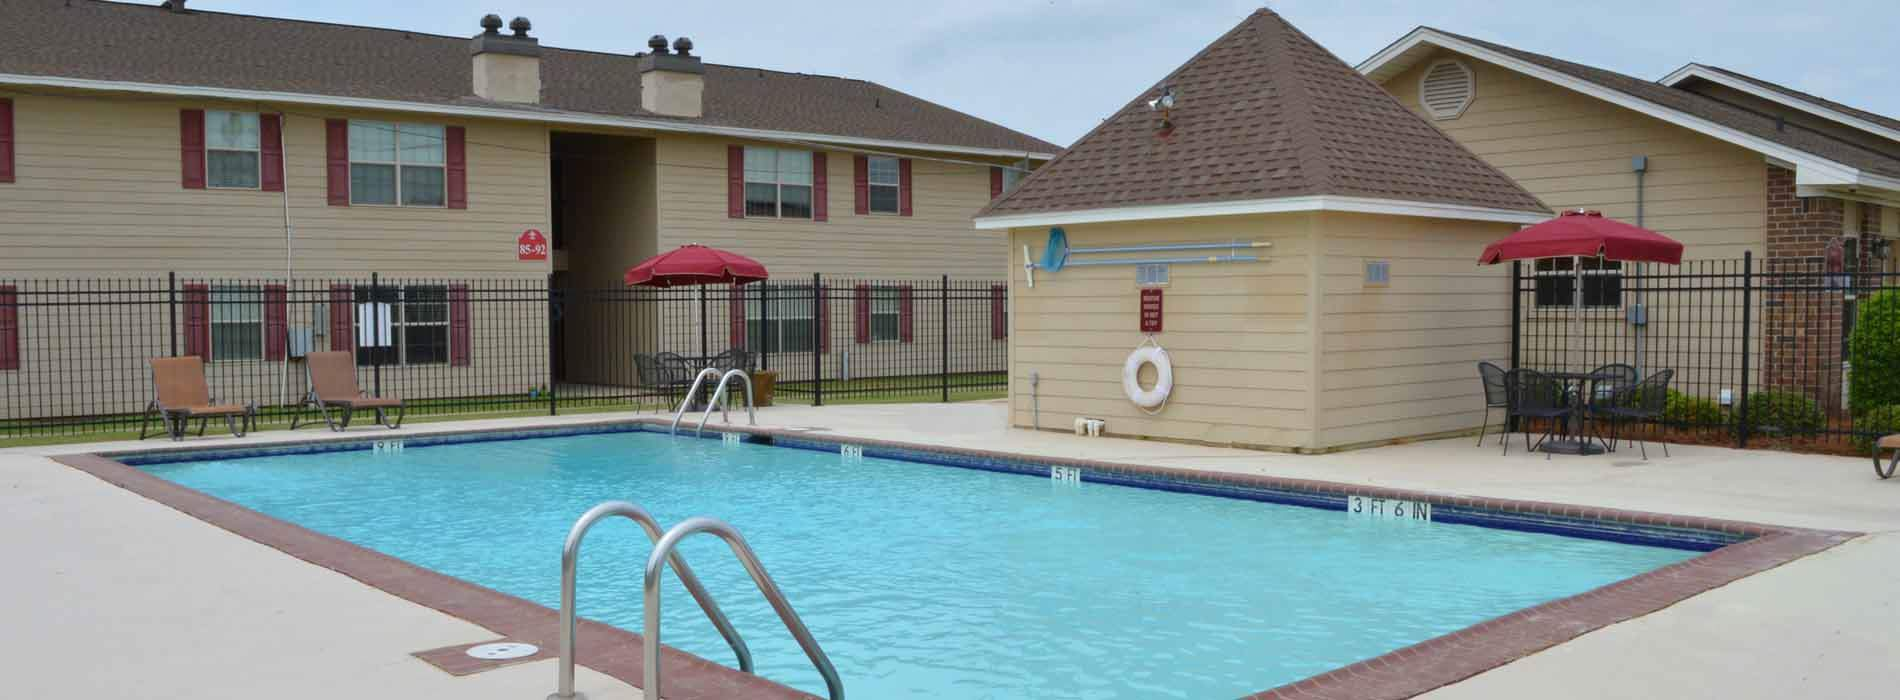 Welcome To Signature Place Apartments In Monroe, LA!